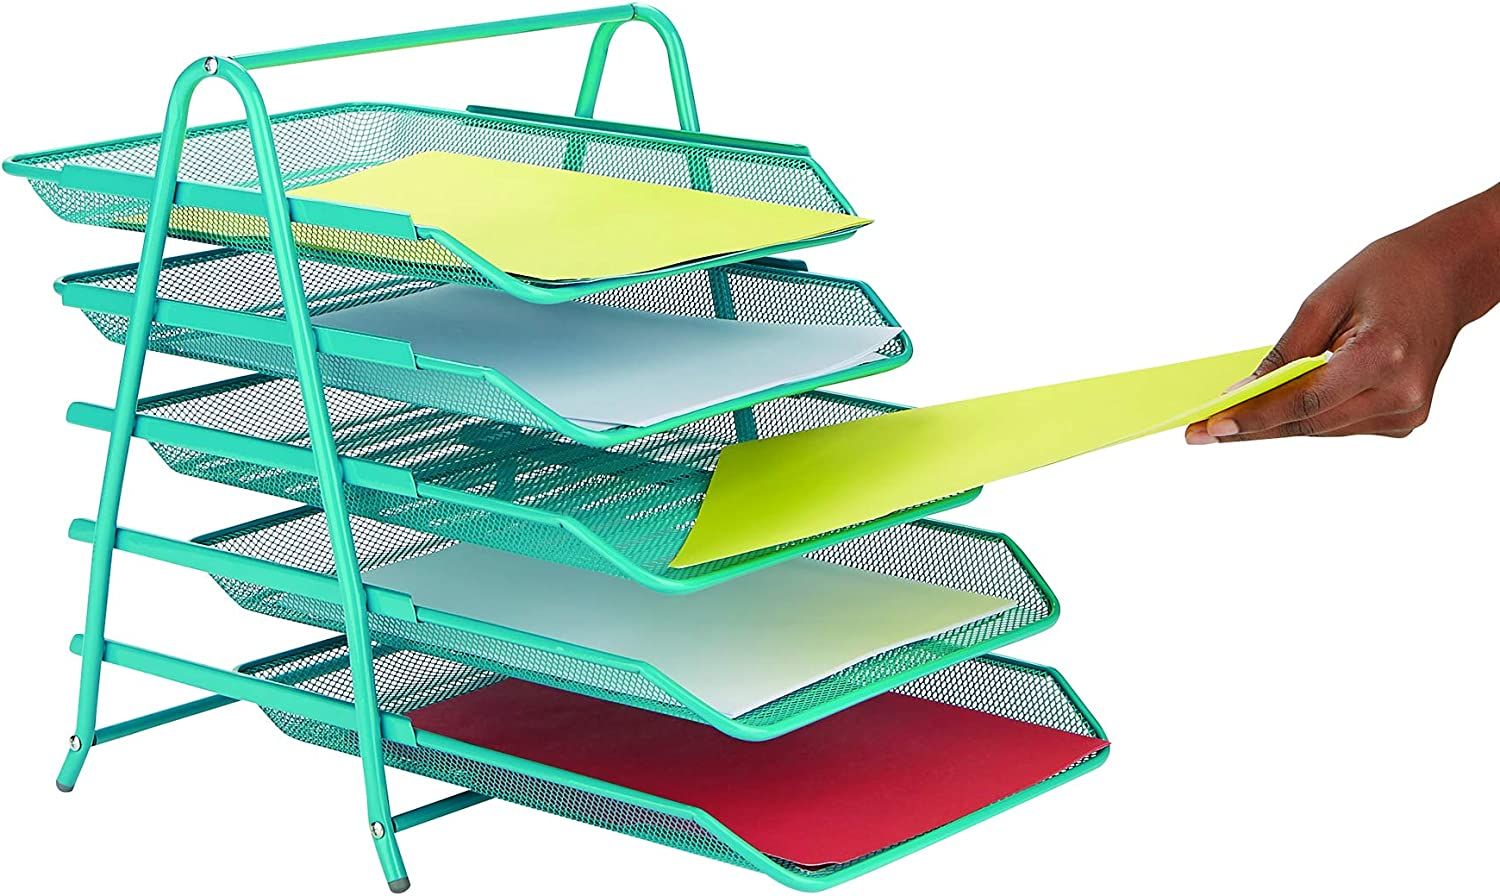 Mind Ranking TOP15 Reader 5TPAPER-TUR Desk Organizer Trays with Wholesale for Sliding 5